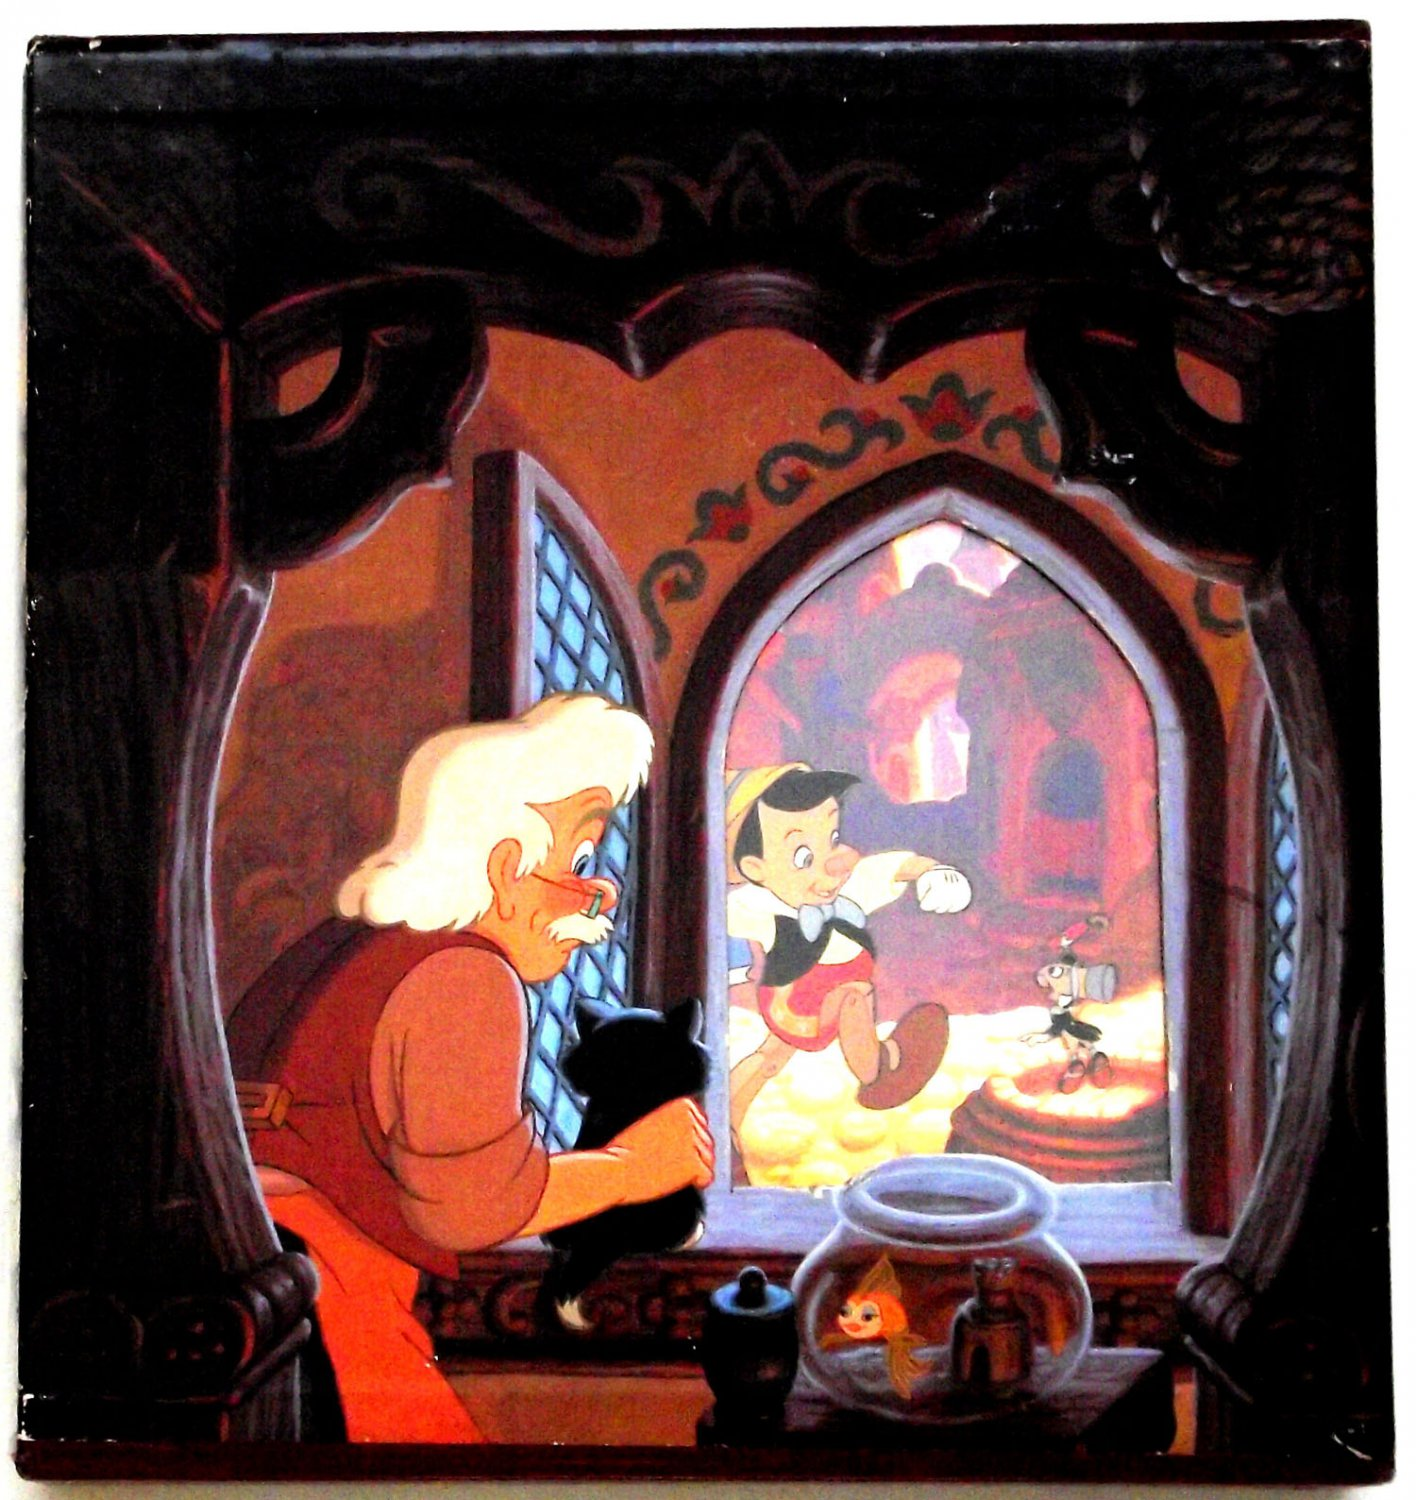 Frank Thomas and Ollie Johnston Disney Animation The Illusion of Life Signed Limited Edition 1981